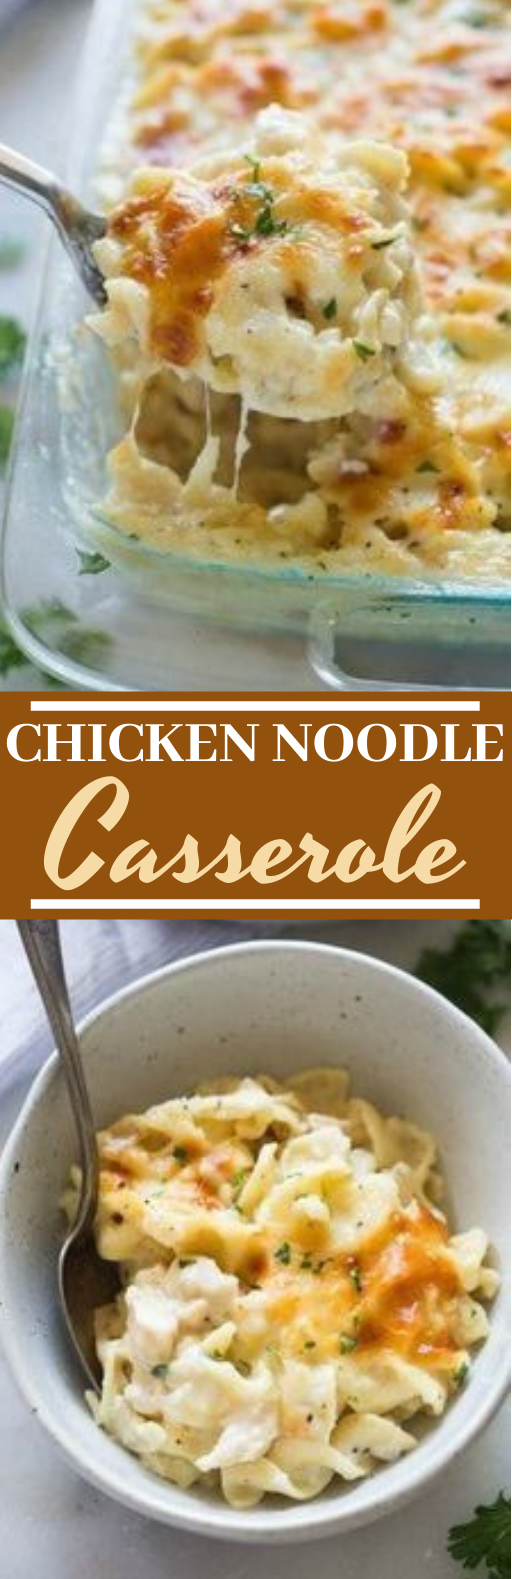 Chicken Noodle Casserole #dinner #recipes